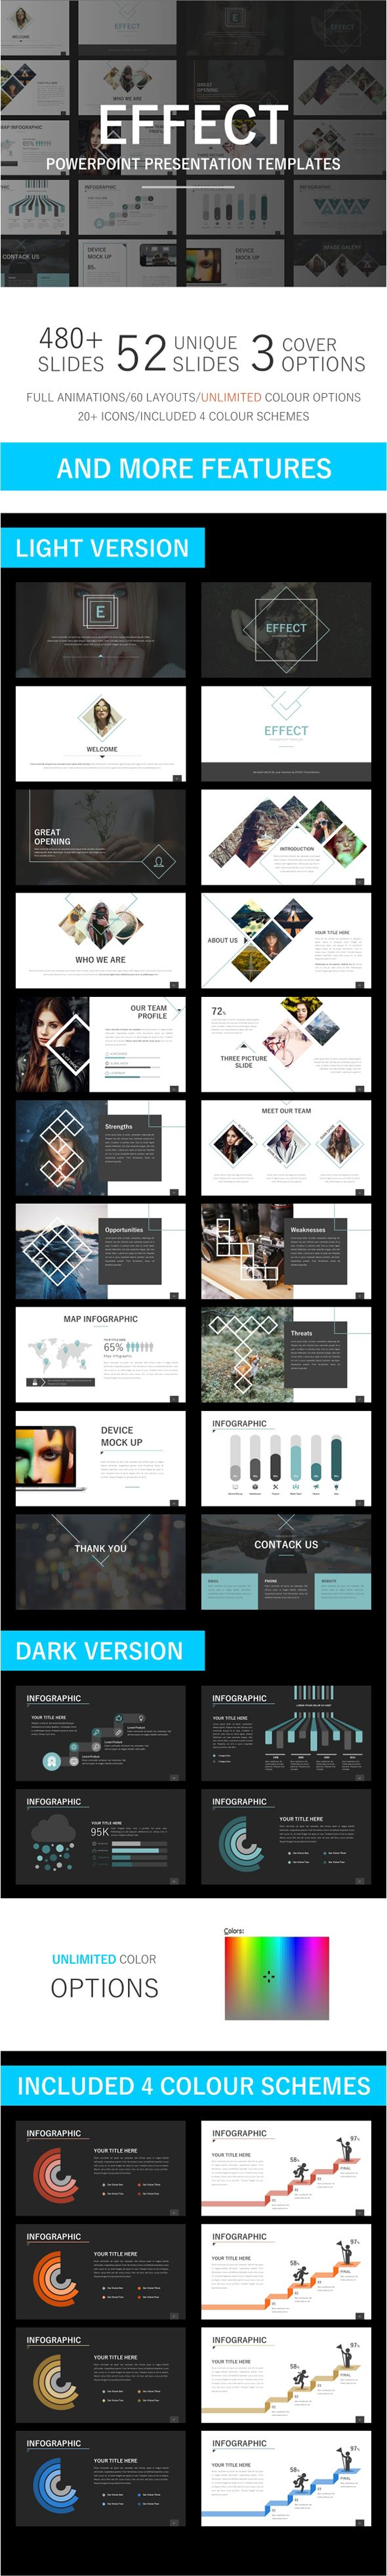 Effect Powerpoint Template - Business #PowerPoint #Templates Download here: https://graphicriver.net/item/effect-powerpoint-template/19228752?ref=alena994